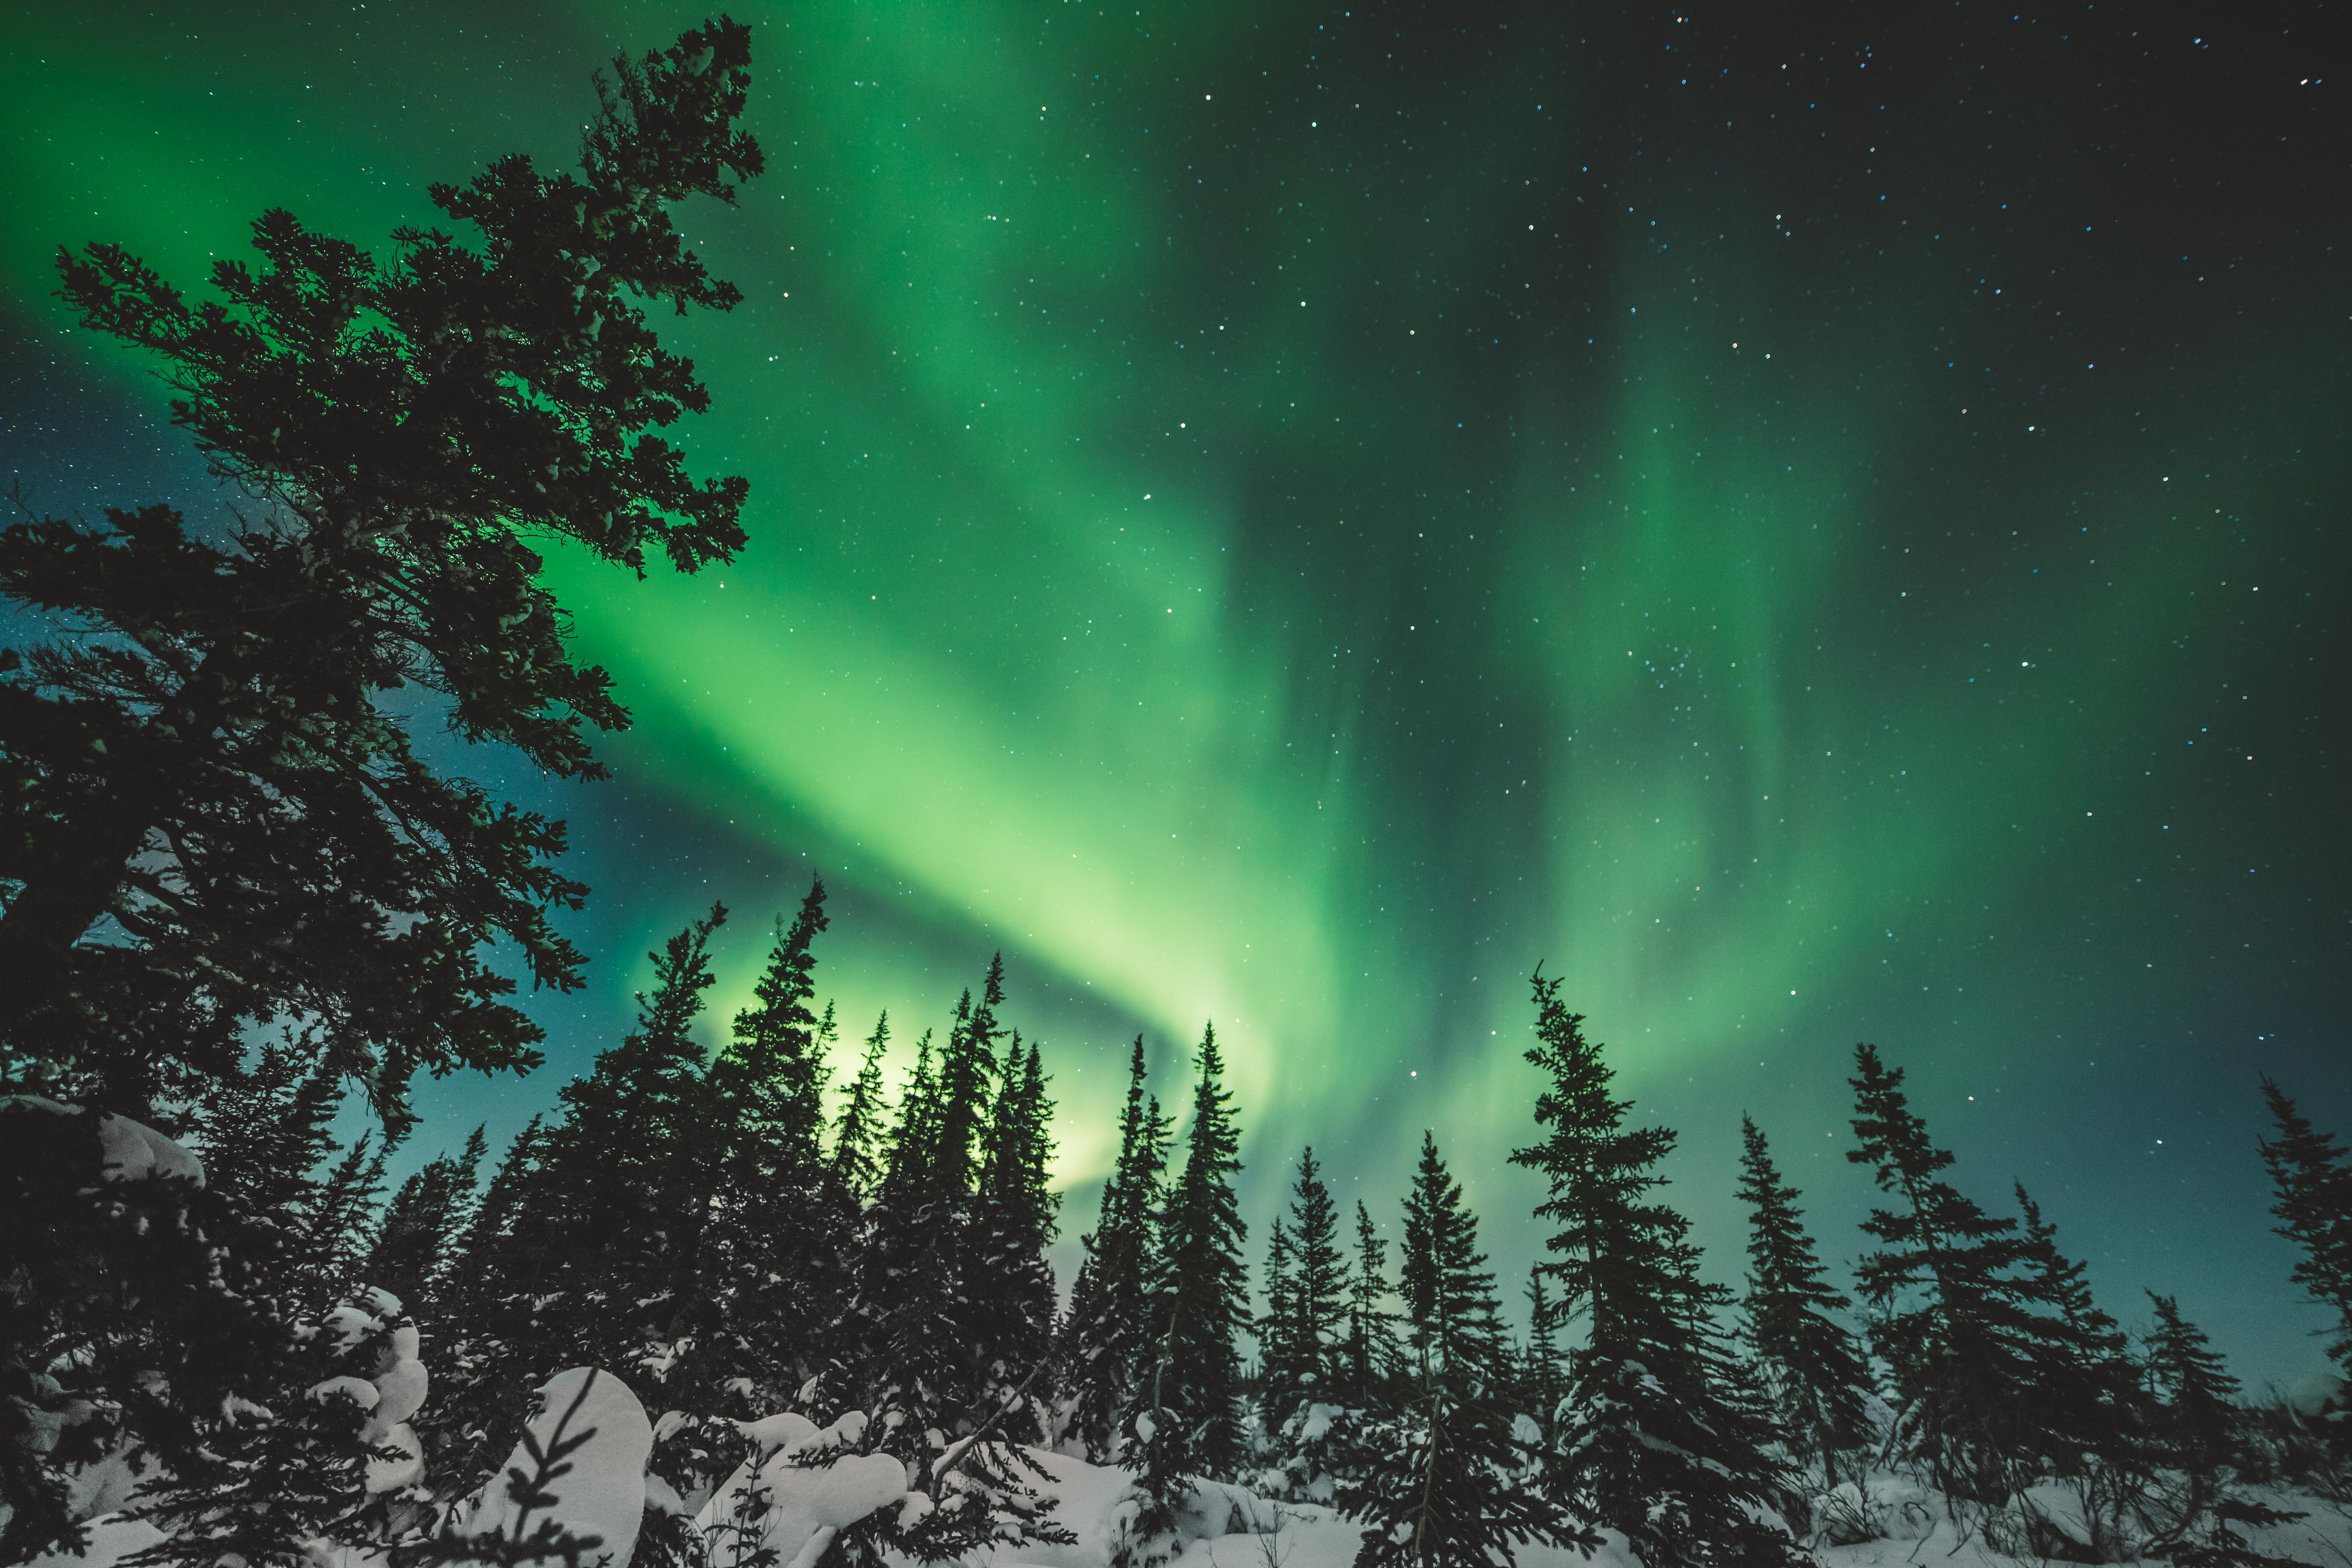 A row of pine trees with green Northern Lights against a darkened sky.